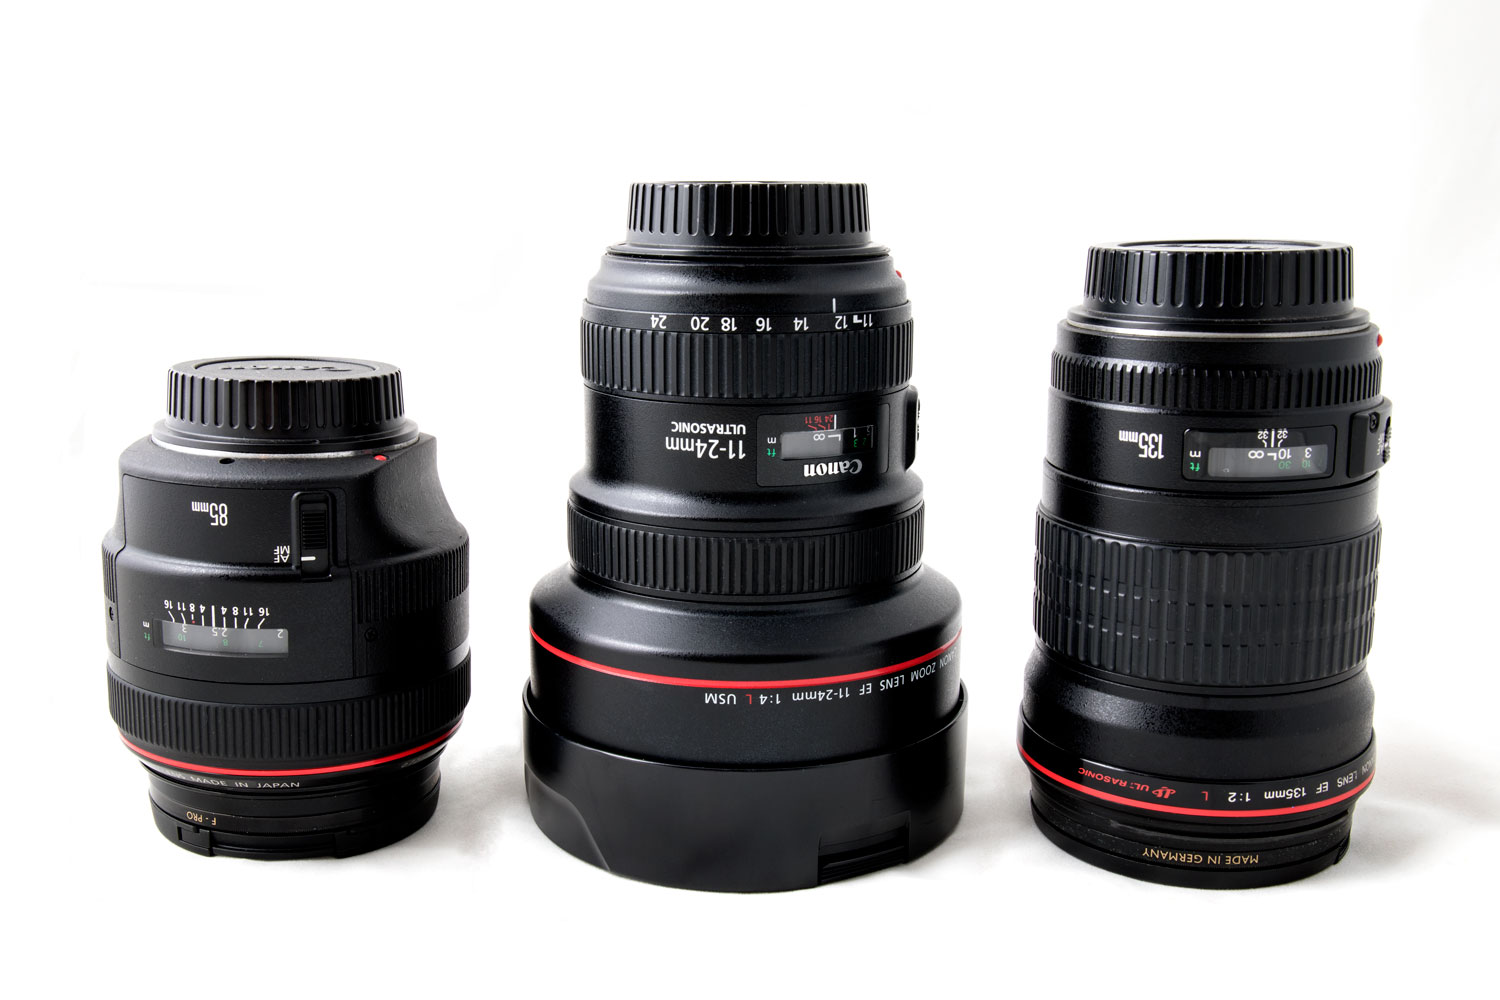 Image: Size comparatives from left to right: Canon 85mm F/1.2 L, Canon 11-24mm F4 L, Canon 135mm F2...